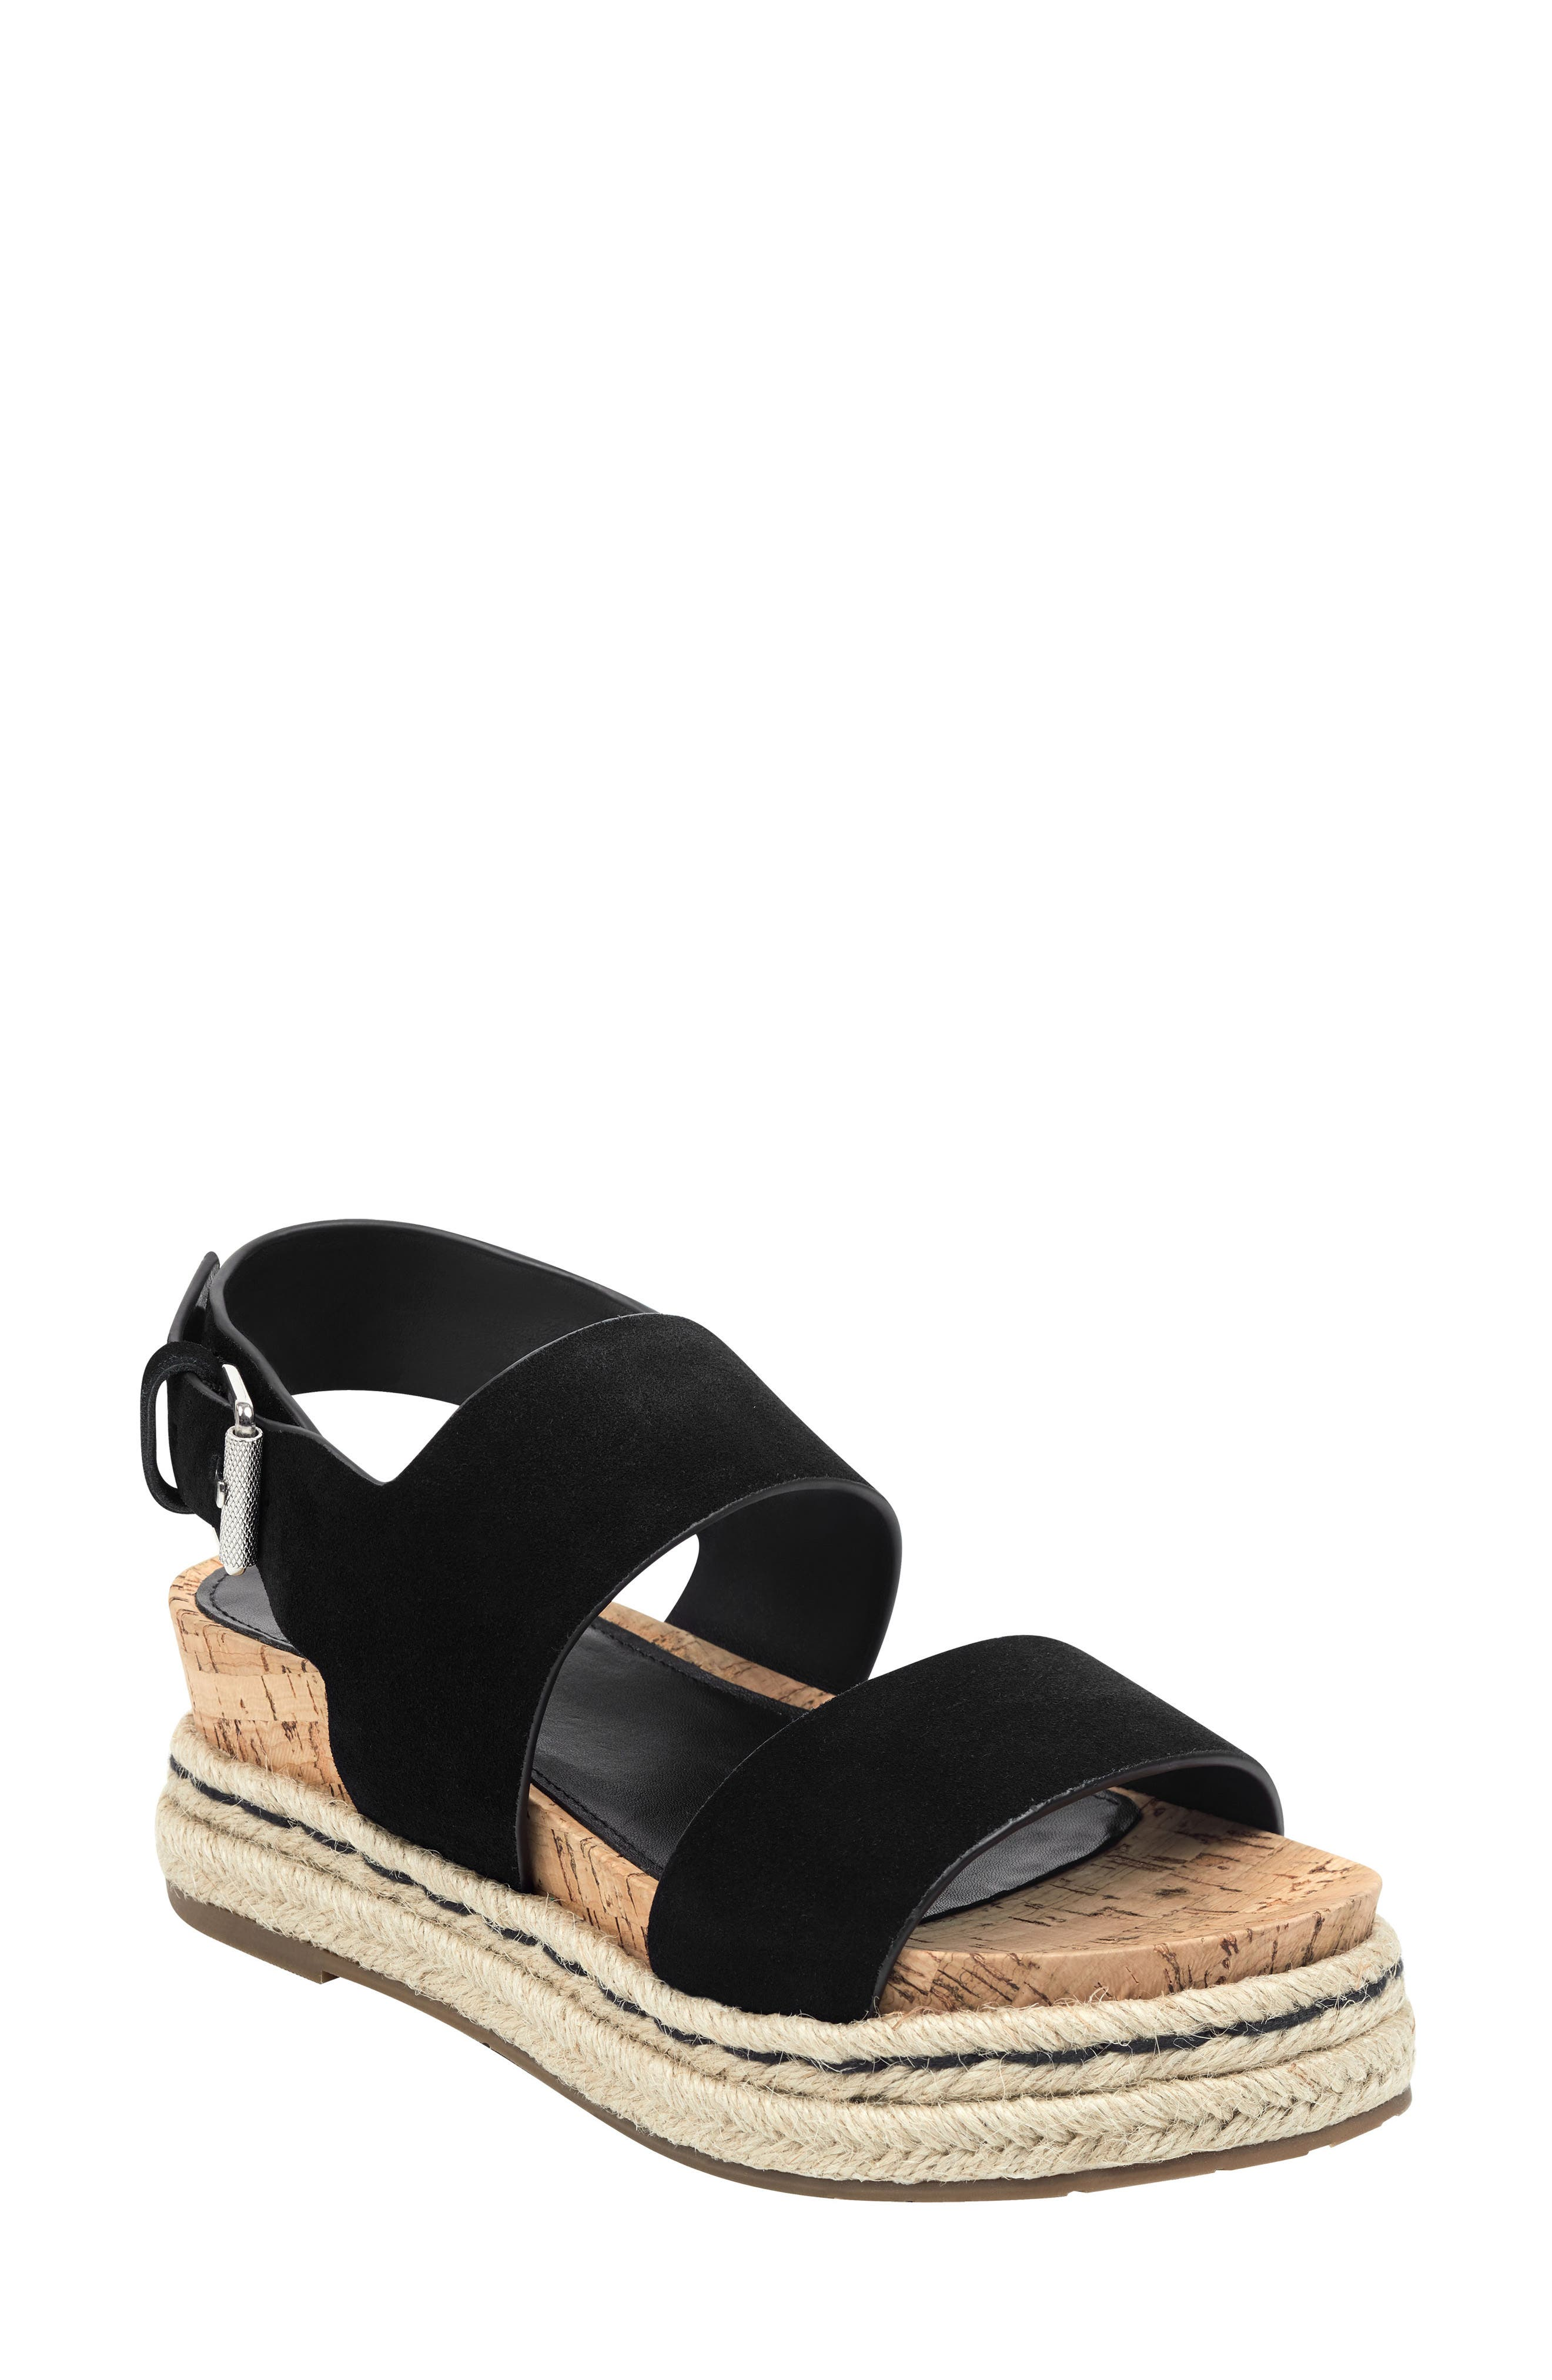 Marc Fisher Ltd Oria Espadrille Platform Sandal, Black